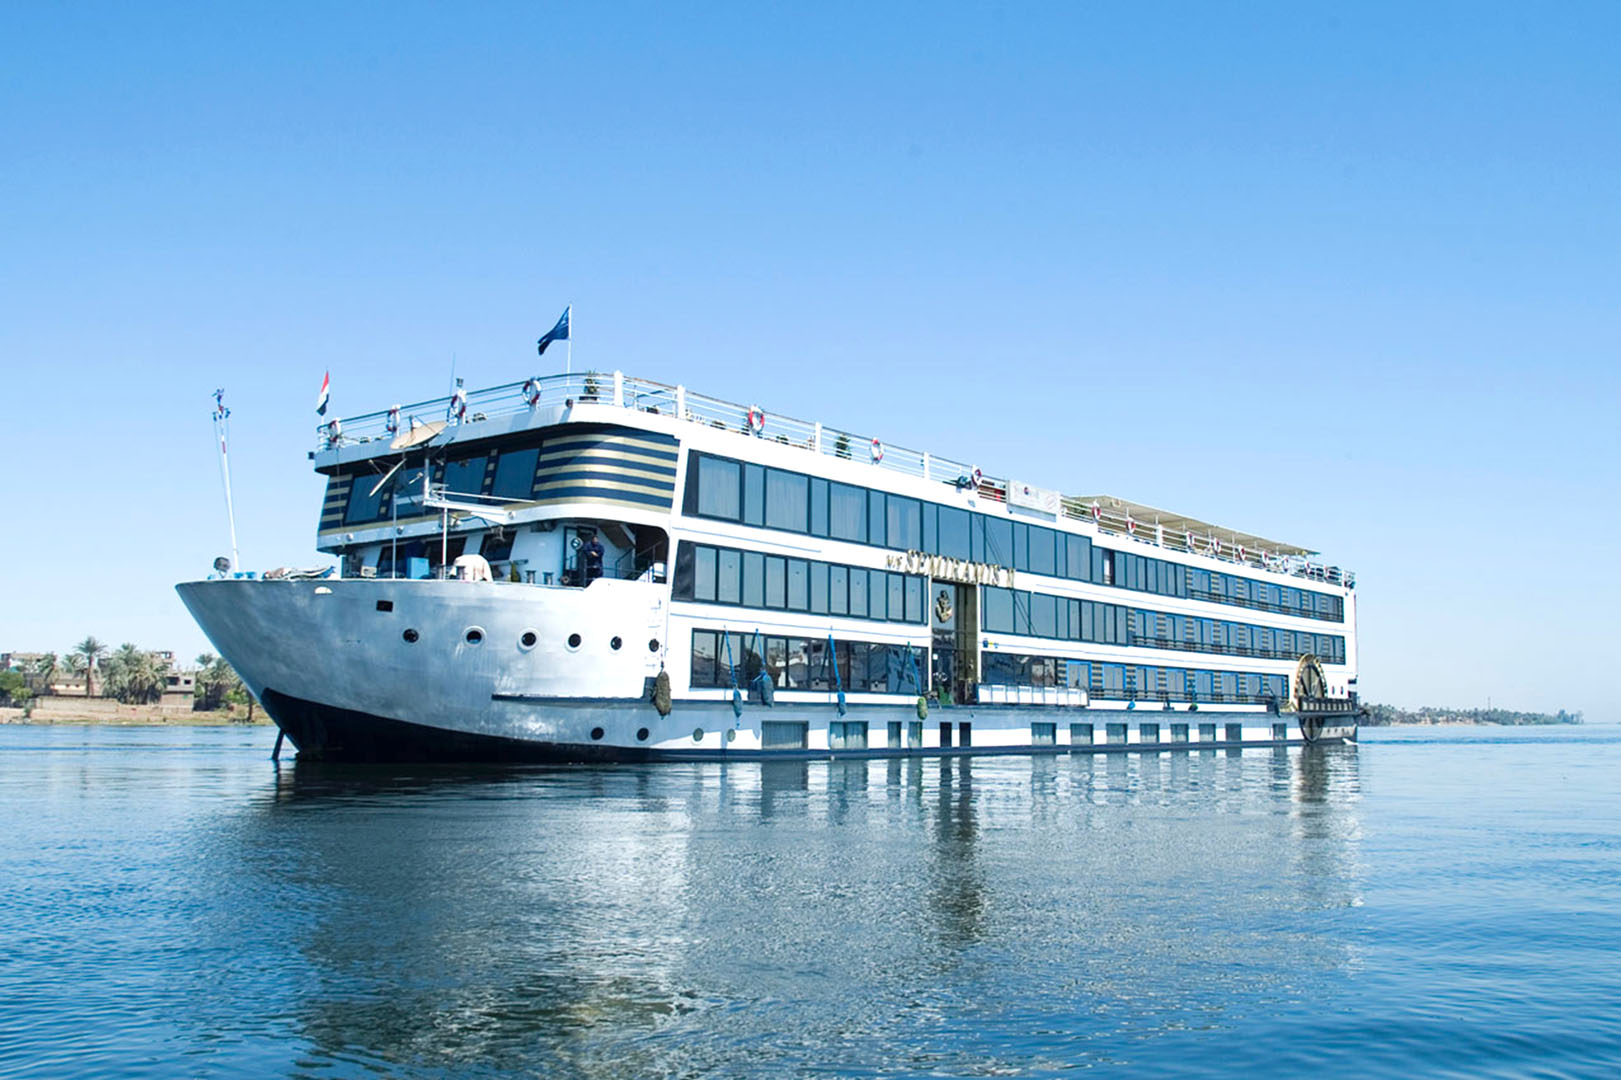 Grace Kelly 5 Stars Dahabeya Nile Cruise ship